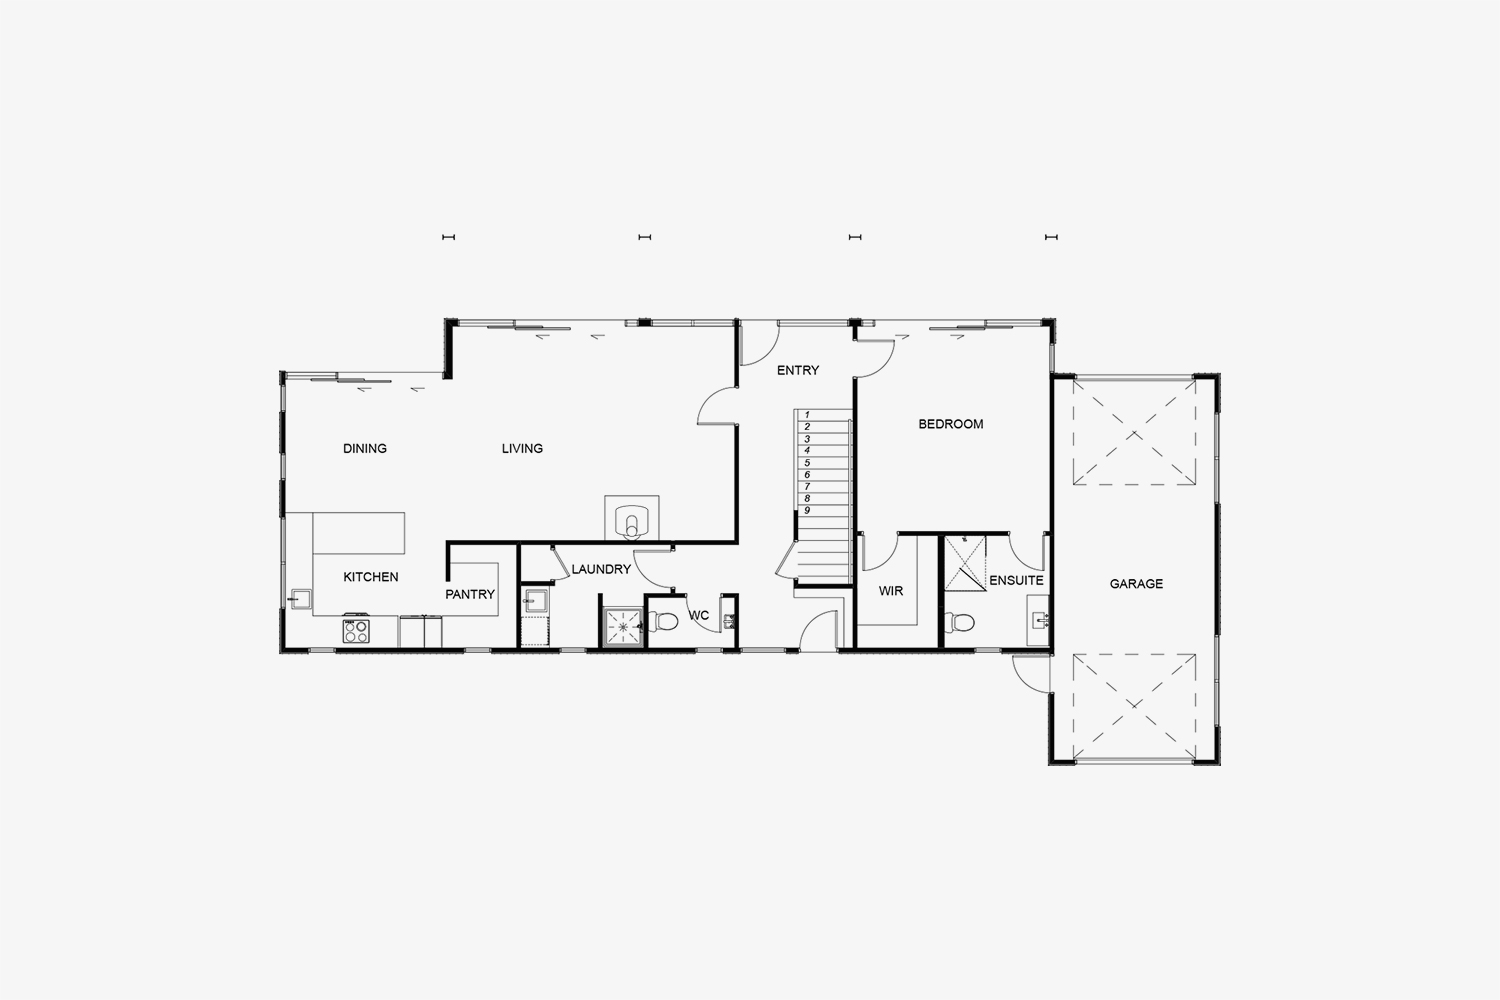 https://www.benchmarkhomes.co.nz/wp-content/uploads/2021/07/Projects-Ross-Plan-1-1500-x-1000-High-Res.jpg